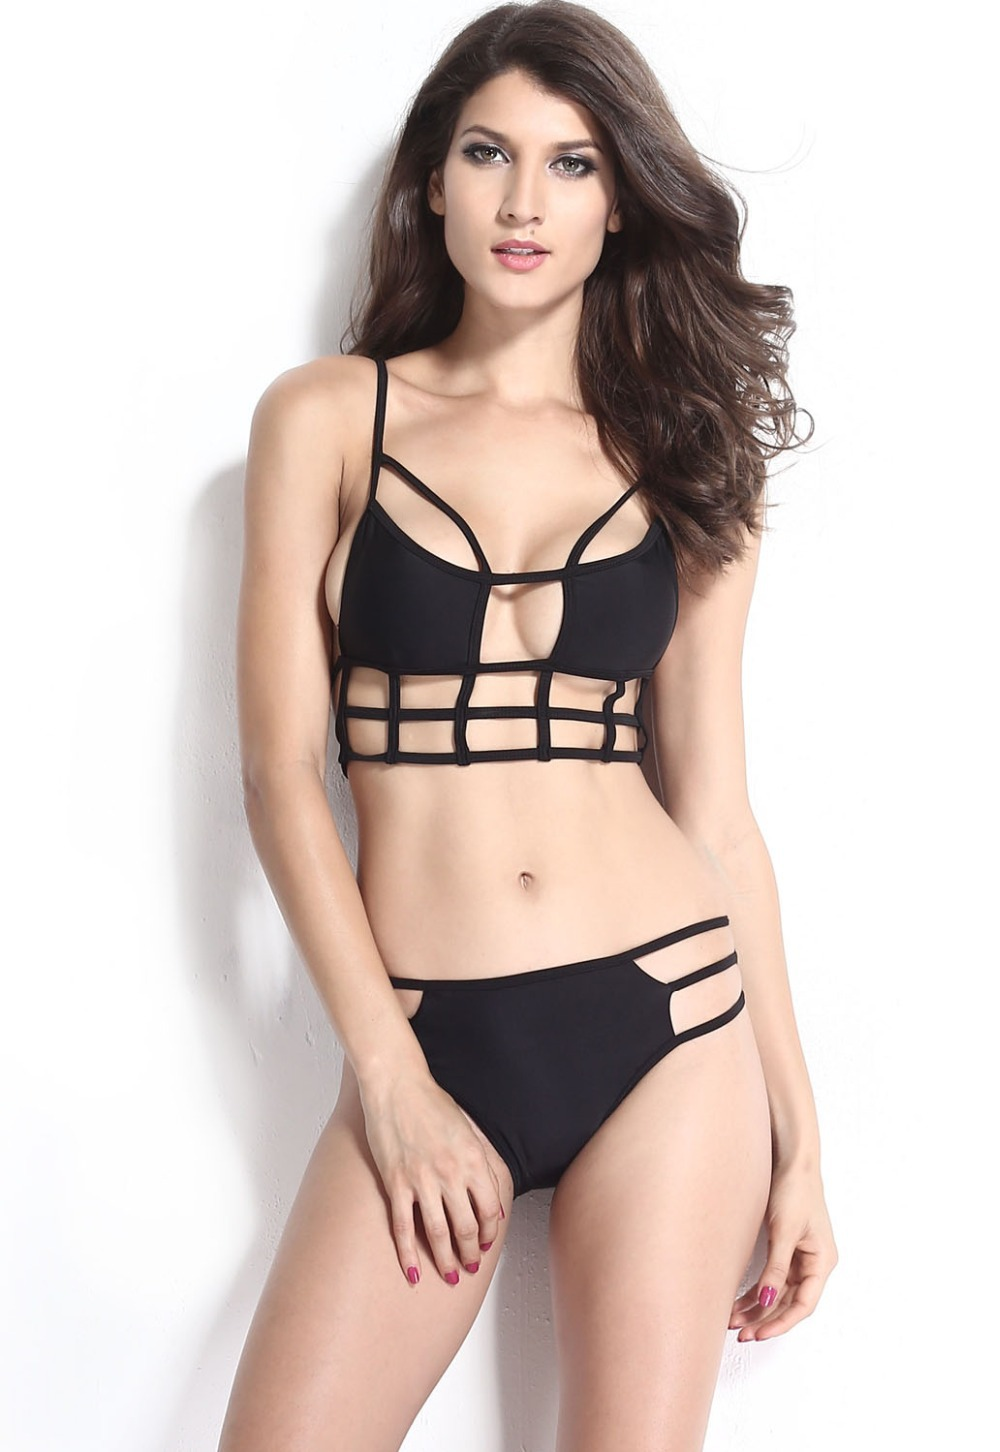 a0f5d32b20a08 Get Quotations · Latest 2015 Sexy Swimwear Women Strappy Bikini Multi  String Black White Bandage Swimsuit Push Up Bikini